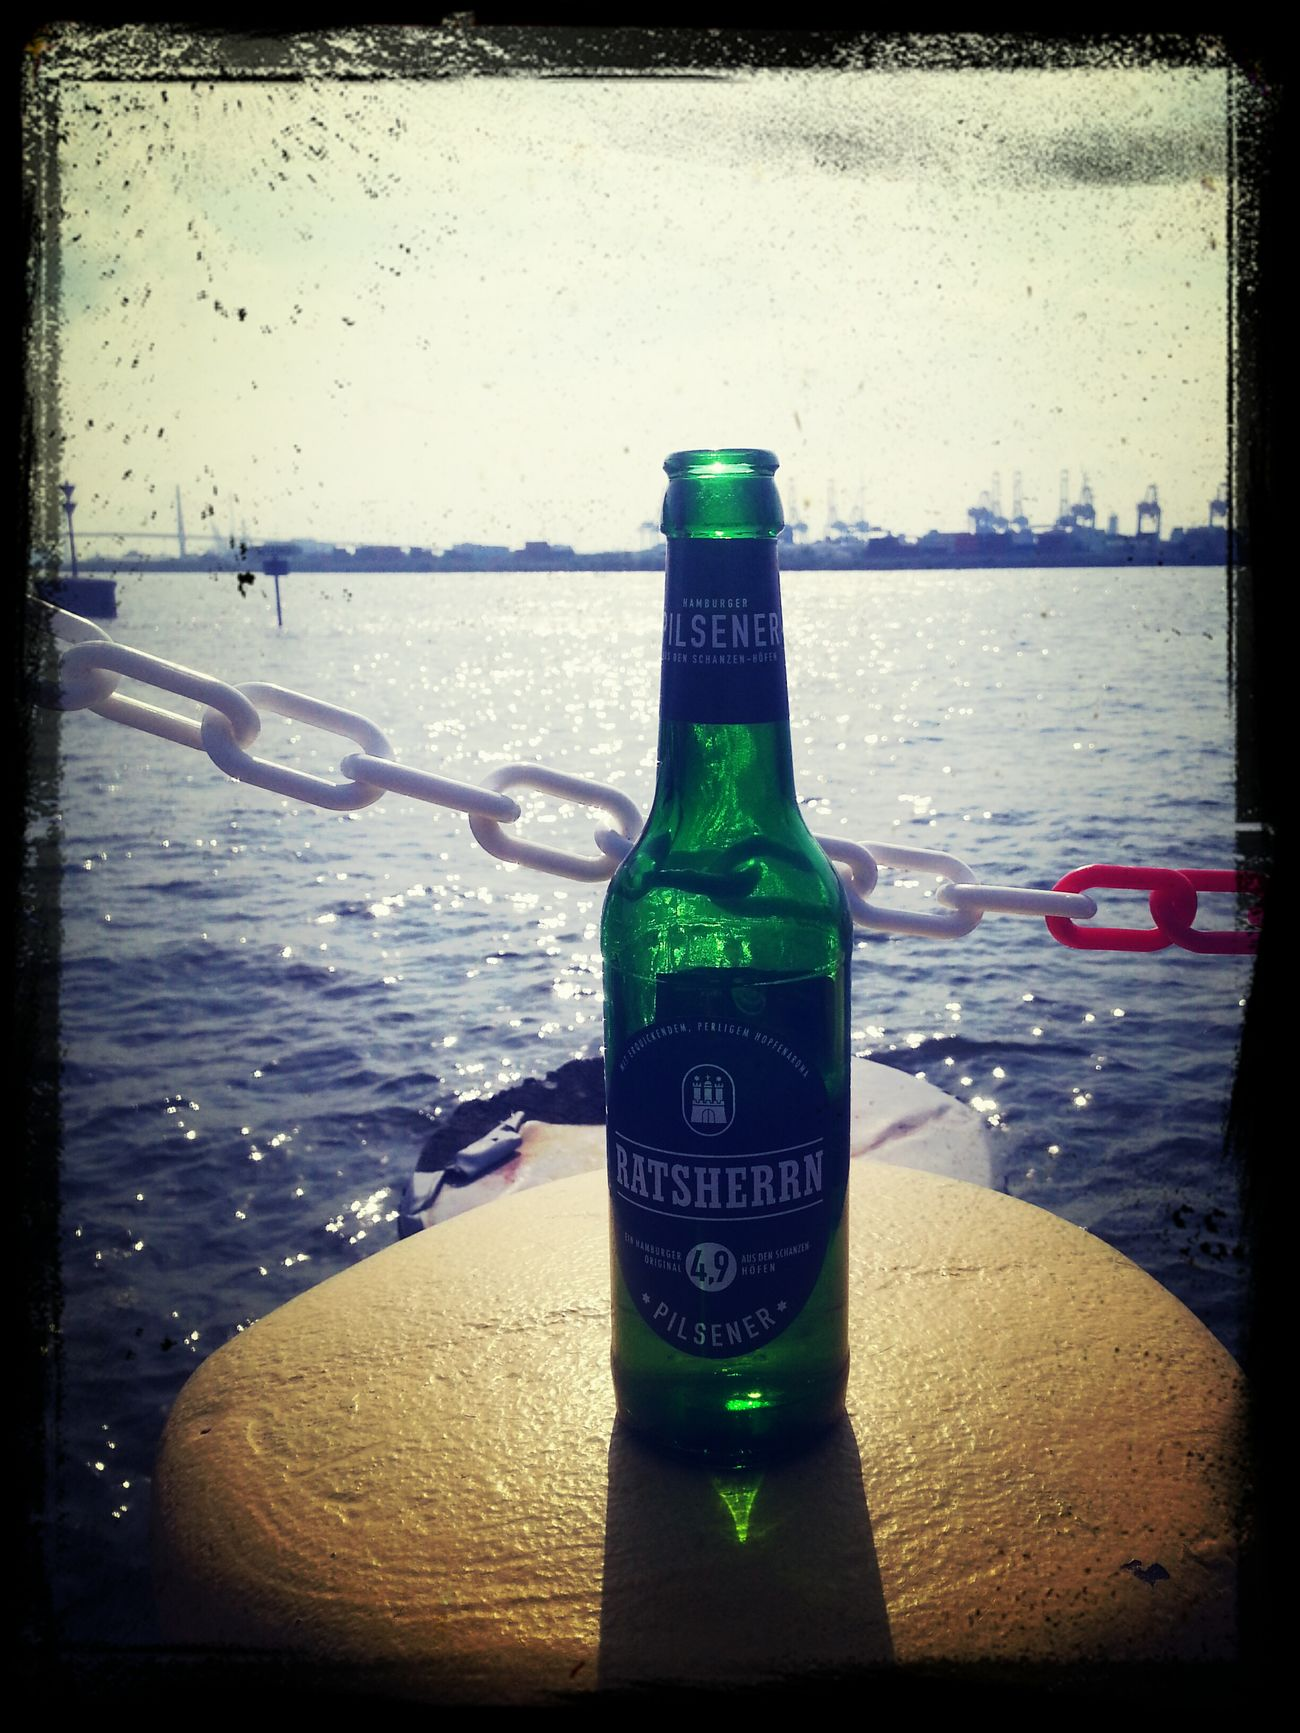 Love Hamburg Chillaxing at the harbor with Ratsherrn Craftbeer.